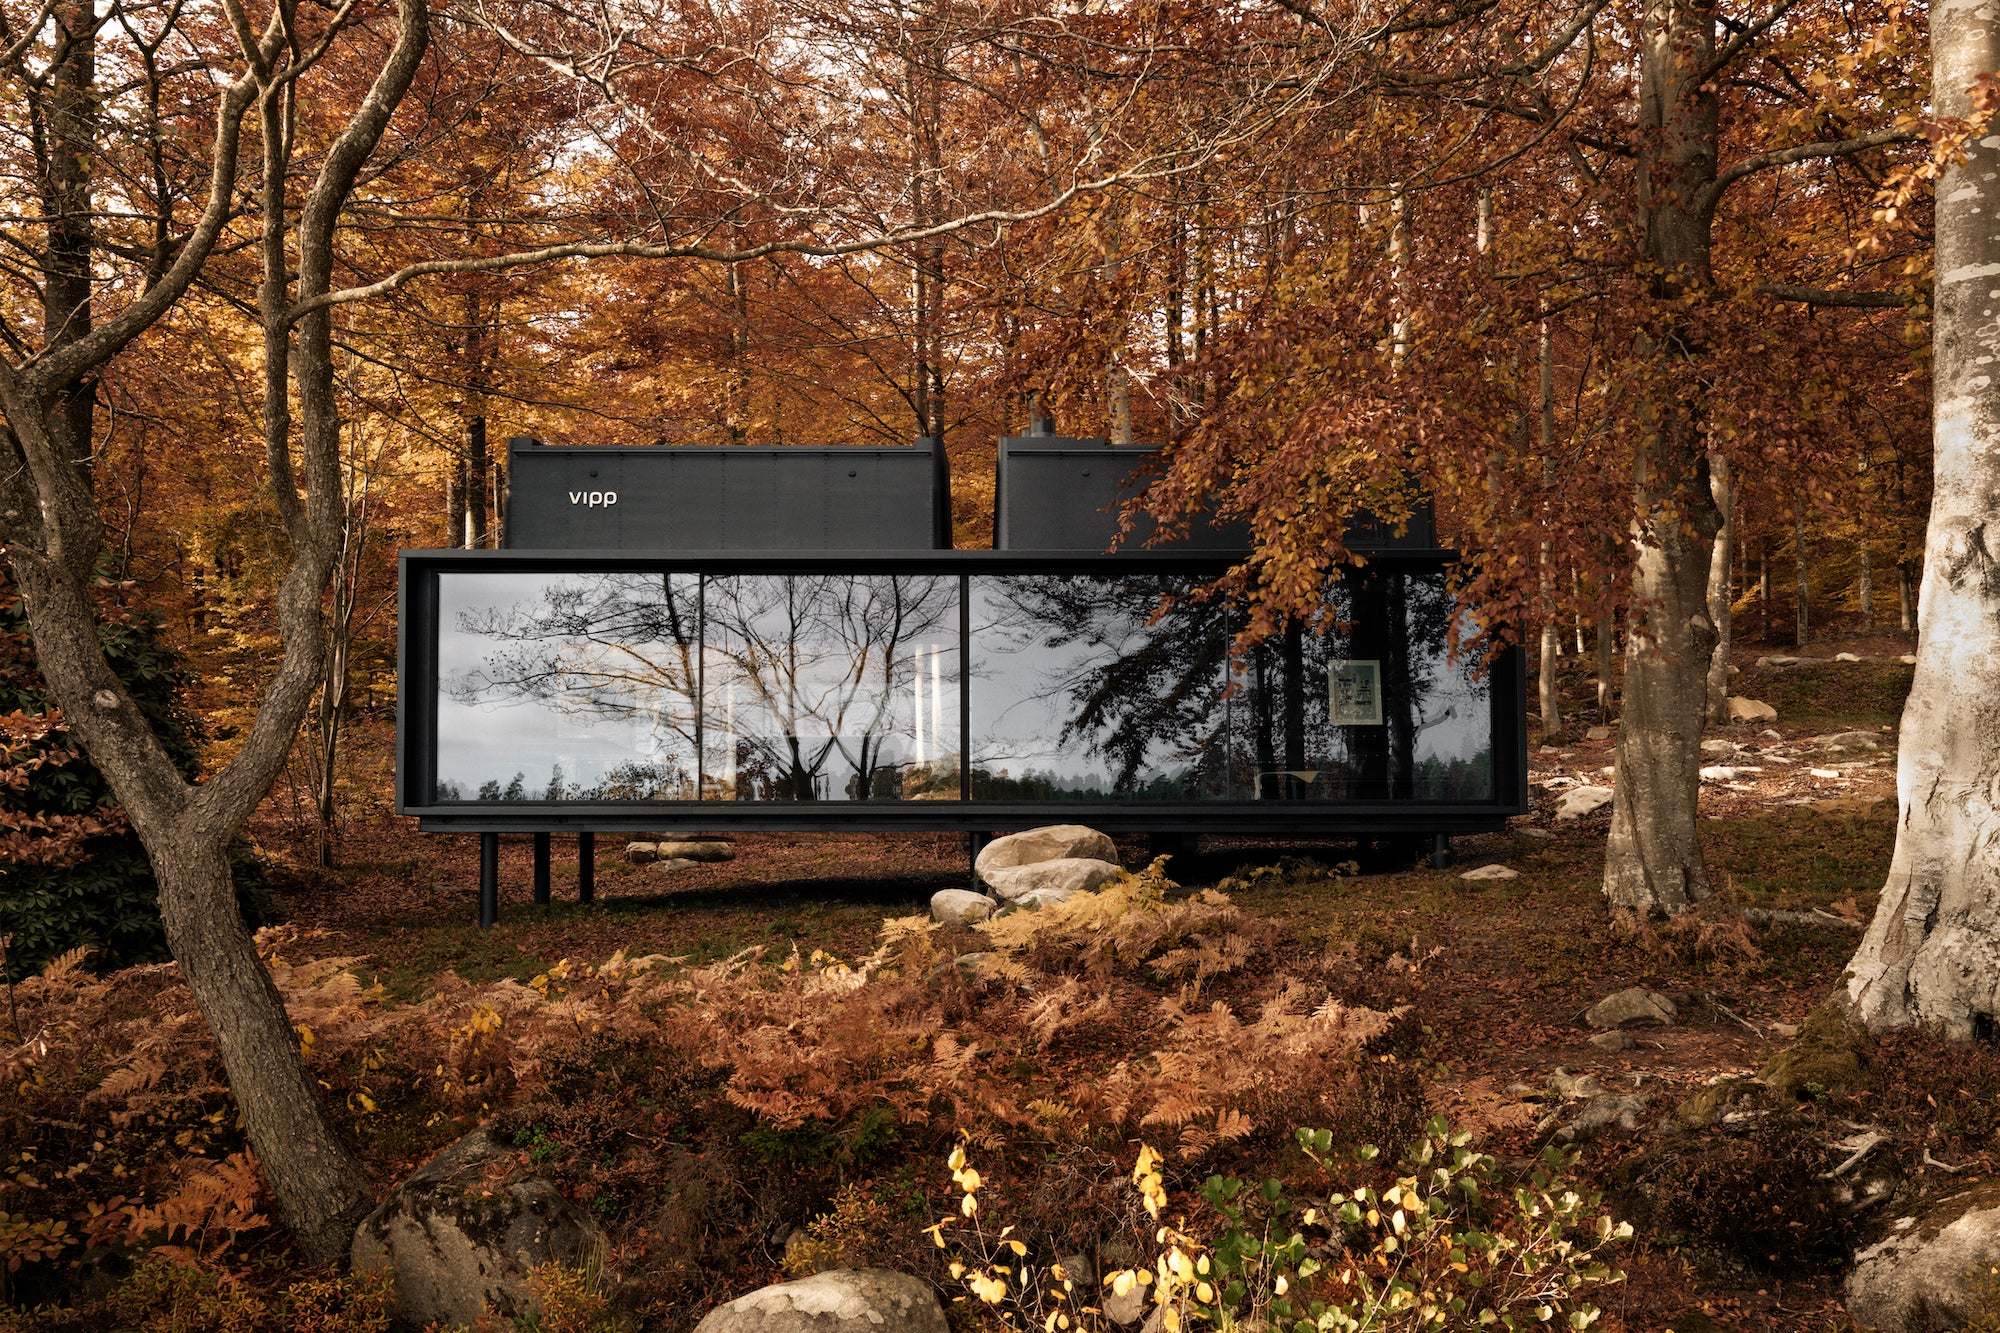 Extraordinary design never goes out of fashion - Explore the VIPP Shelter